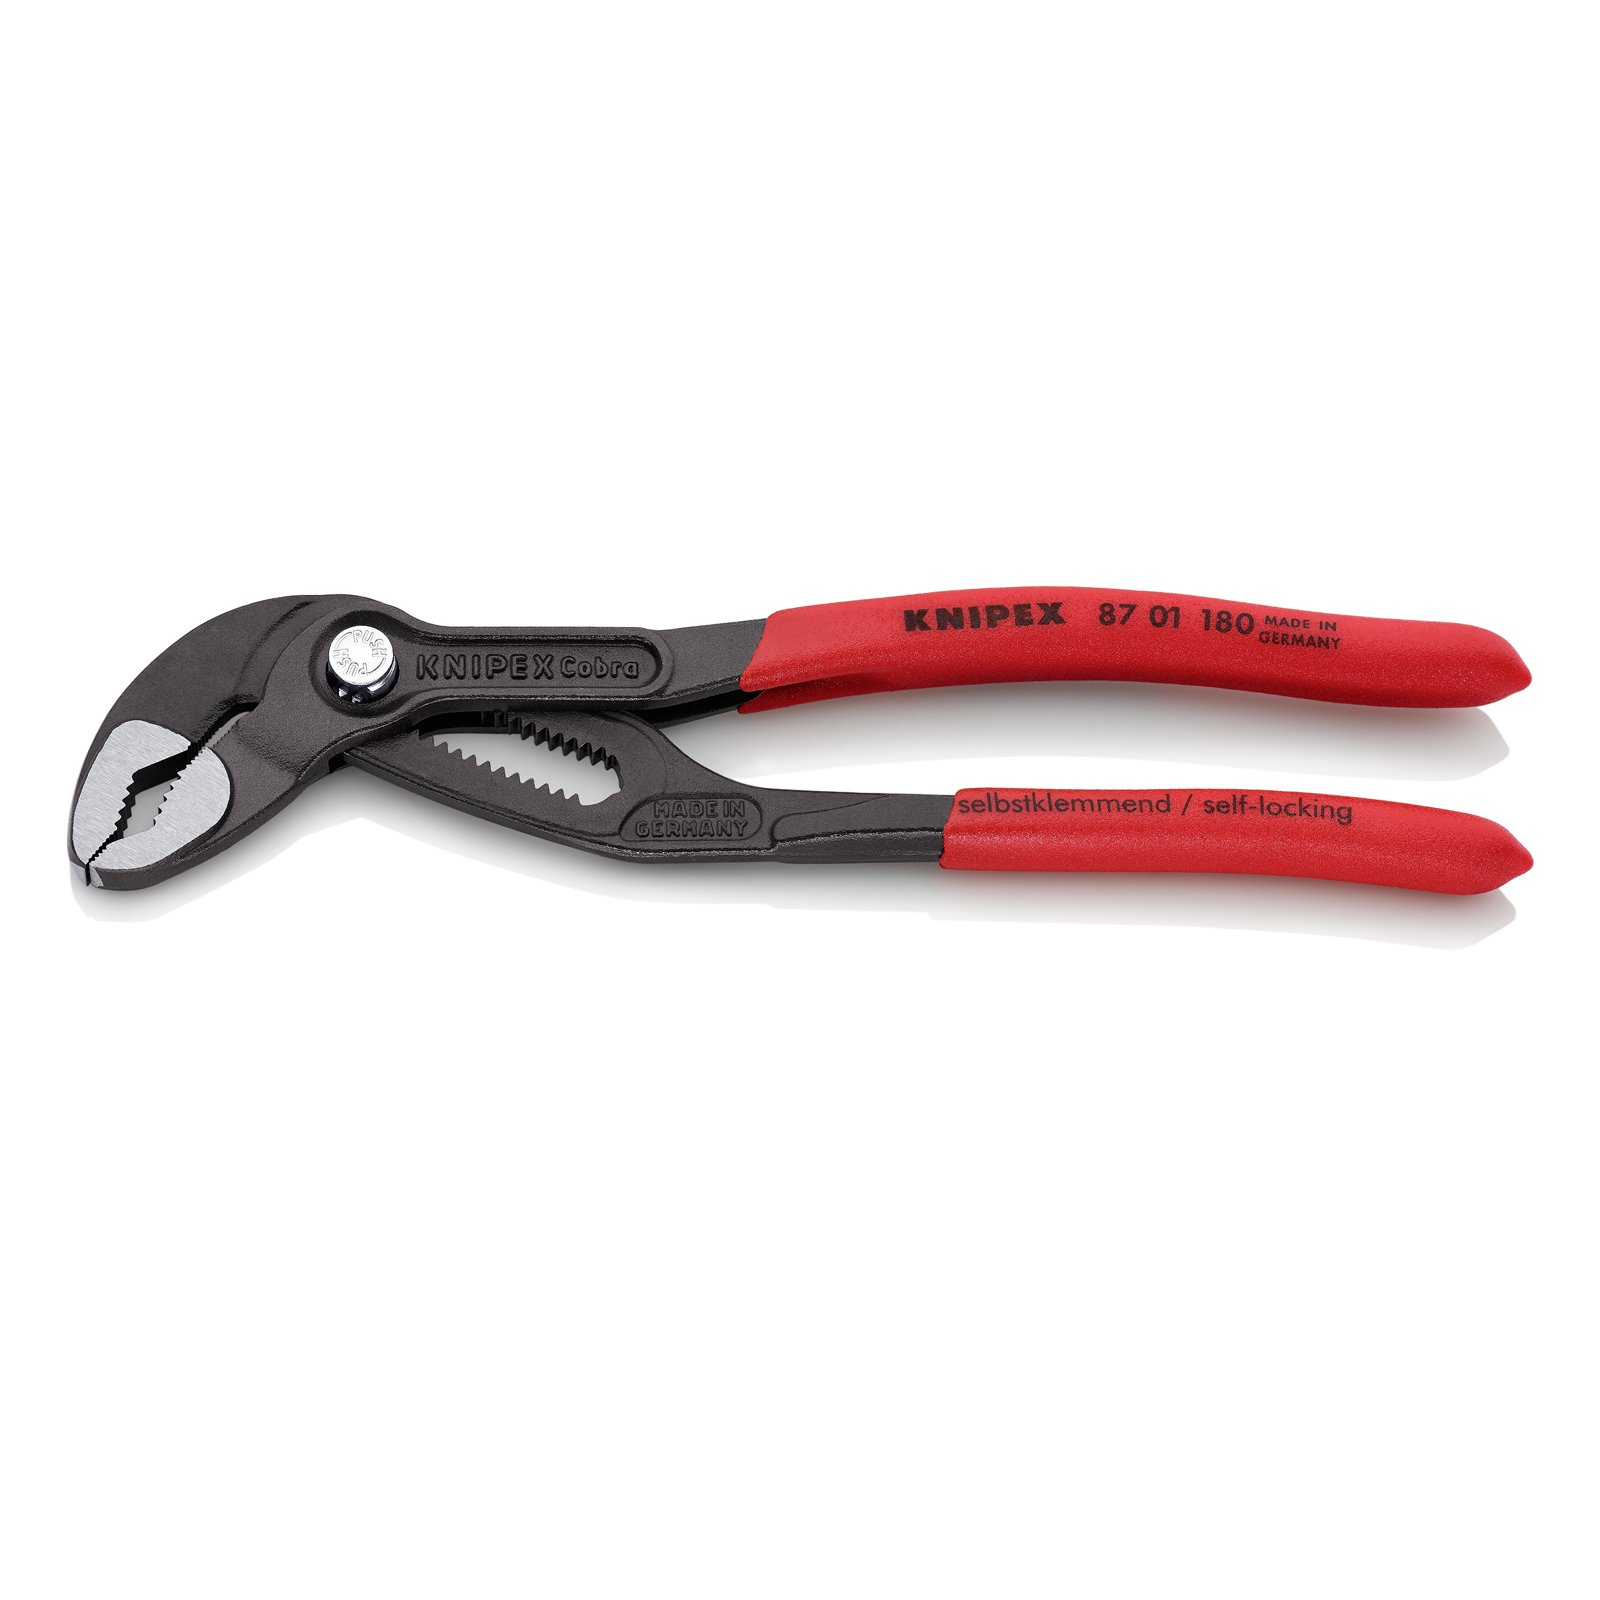 KNIPEX Tools Knipex 8701180 Cobra Adjustable Gripping Pliers - 7'' by KNIPEX Tools